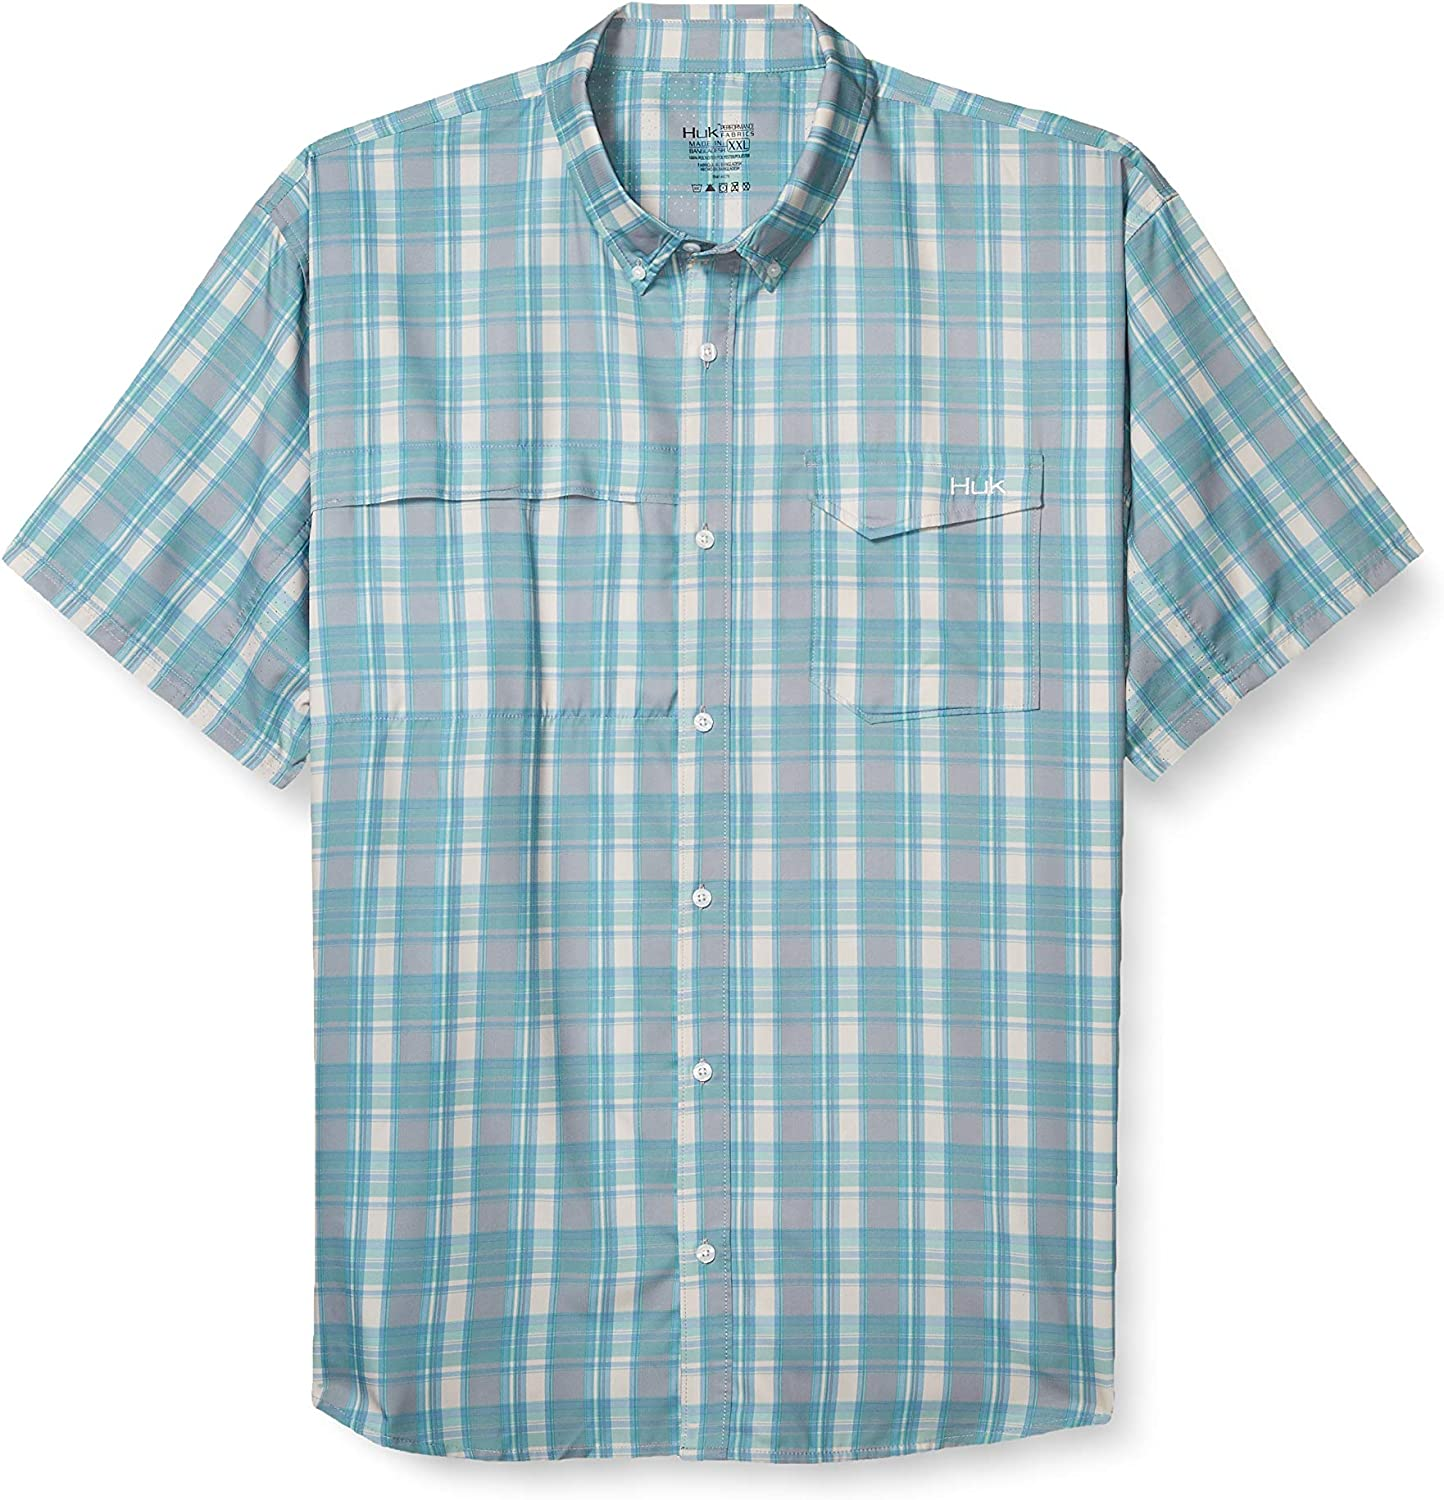 HUK Mens Tide Point Woven Plaid Short Sleeve Shirt | Button Down Performance Shirt with UPF 30+ Sun Protection